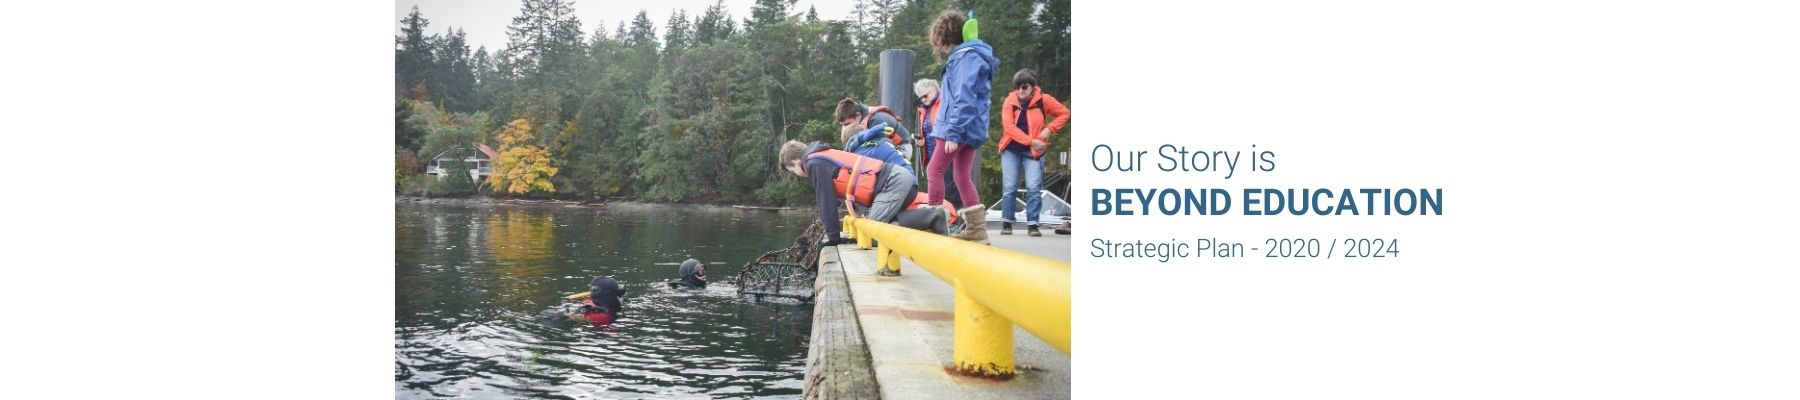 a group of stuents look over a dock to some scuba divers who are brining up items from below